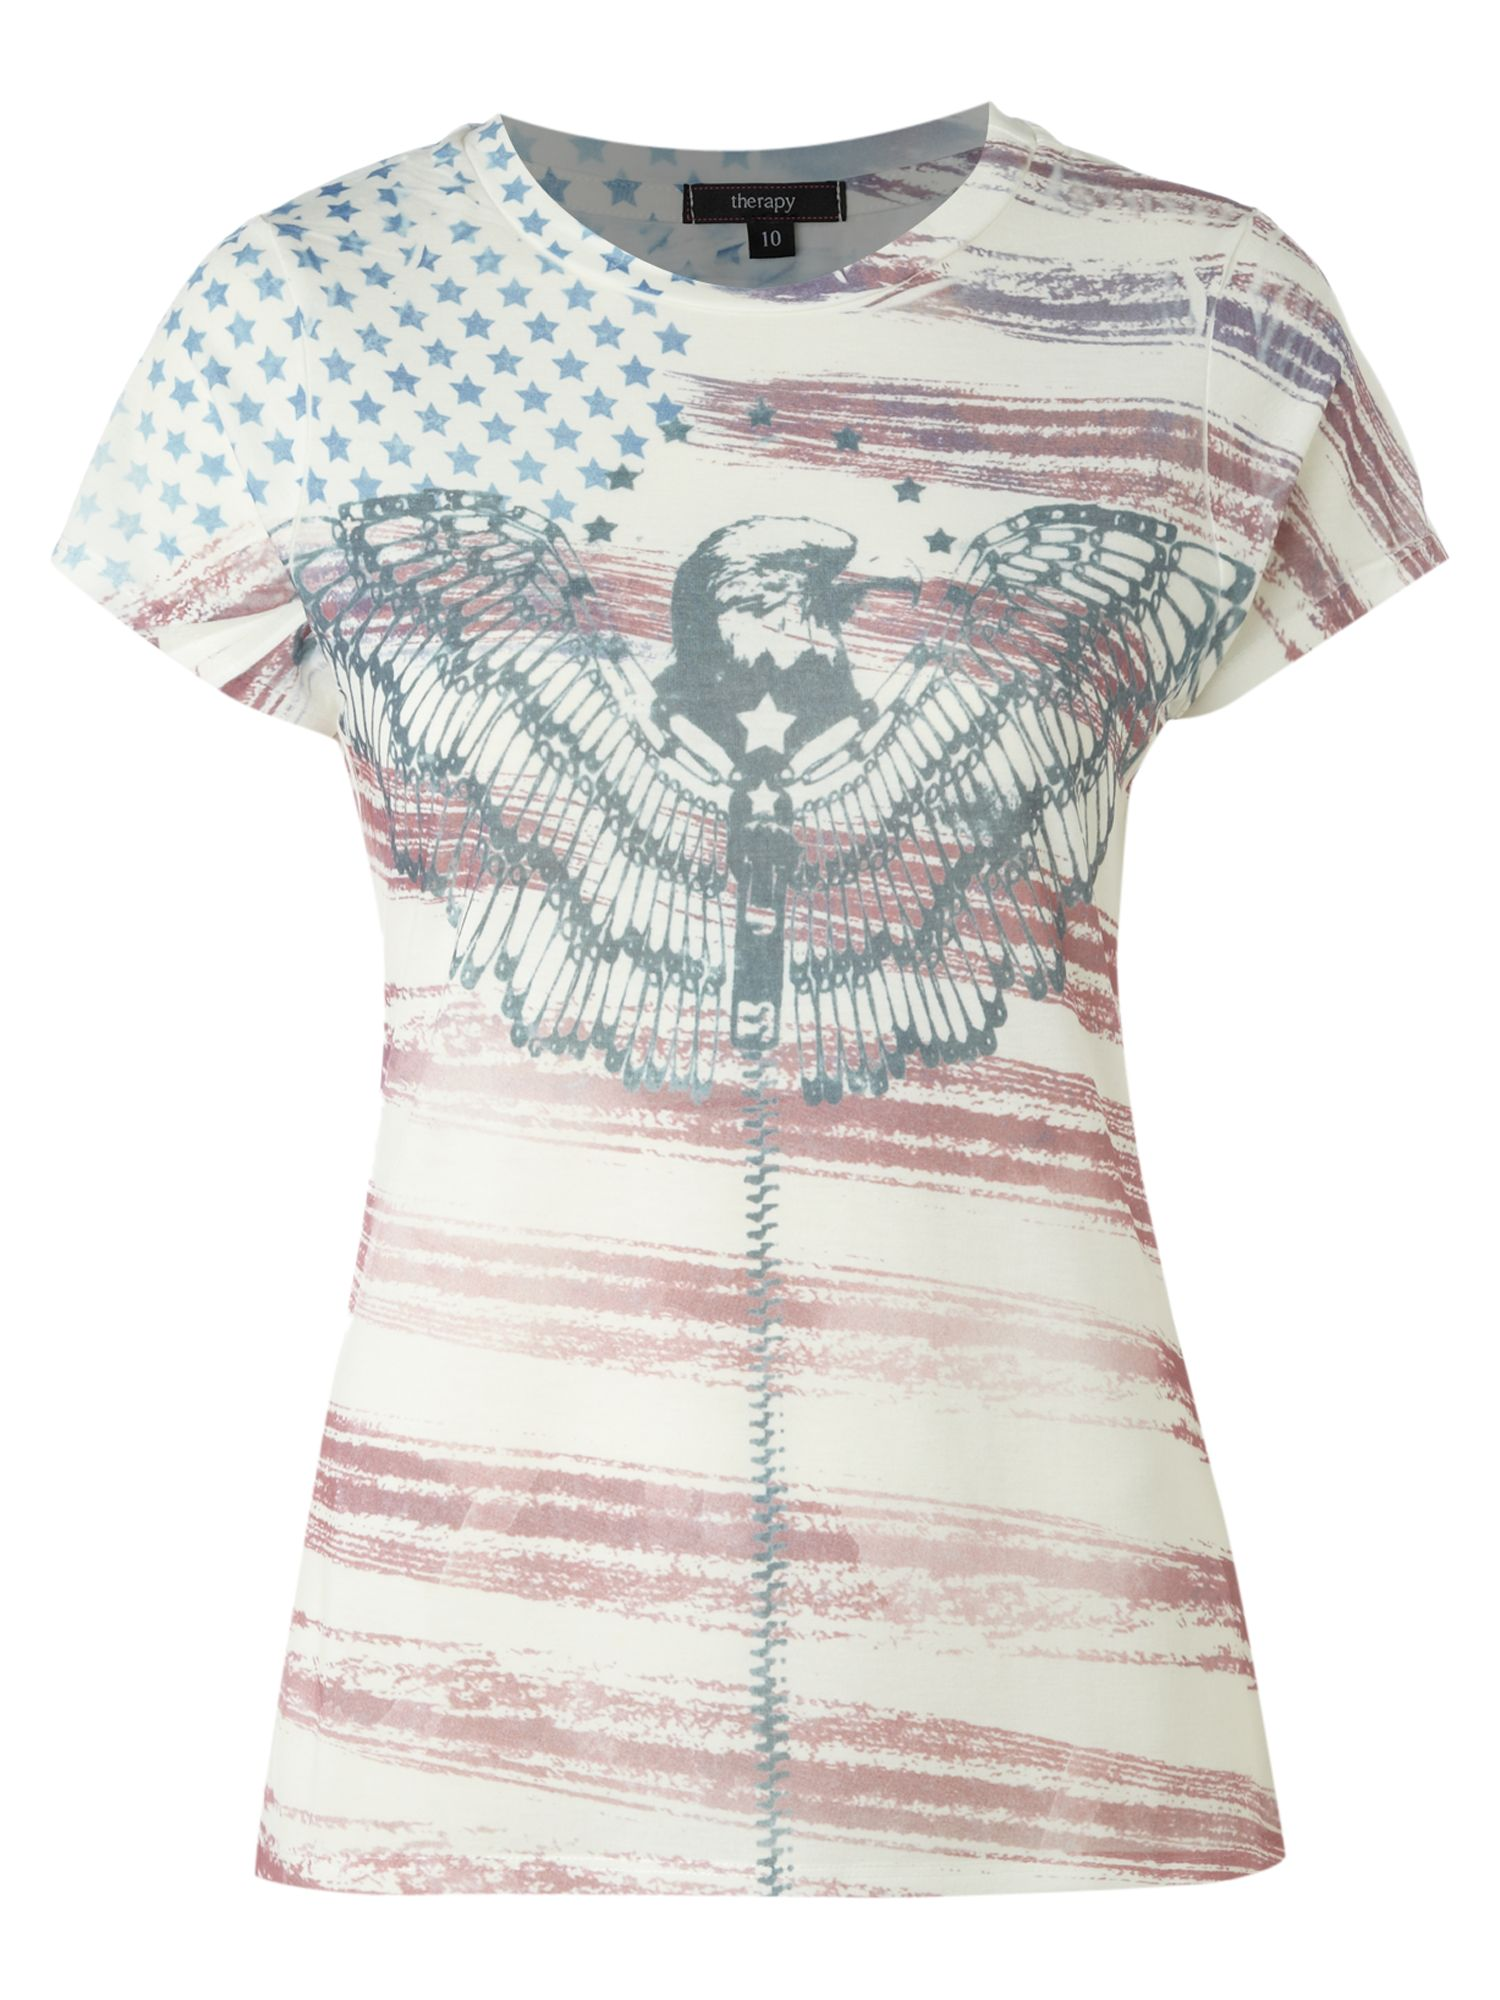 Therapy Old American flag t-shirt - Off White product image